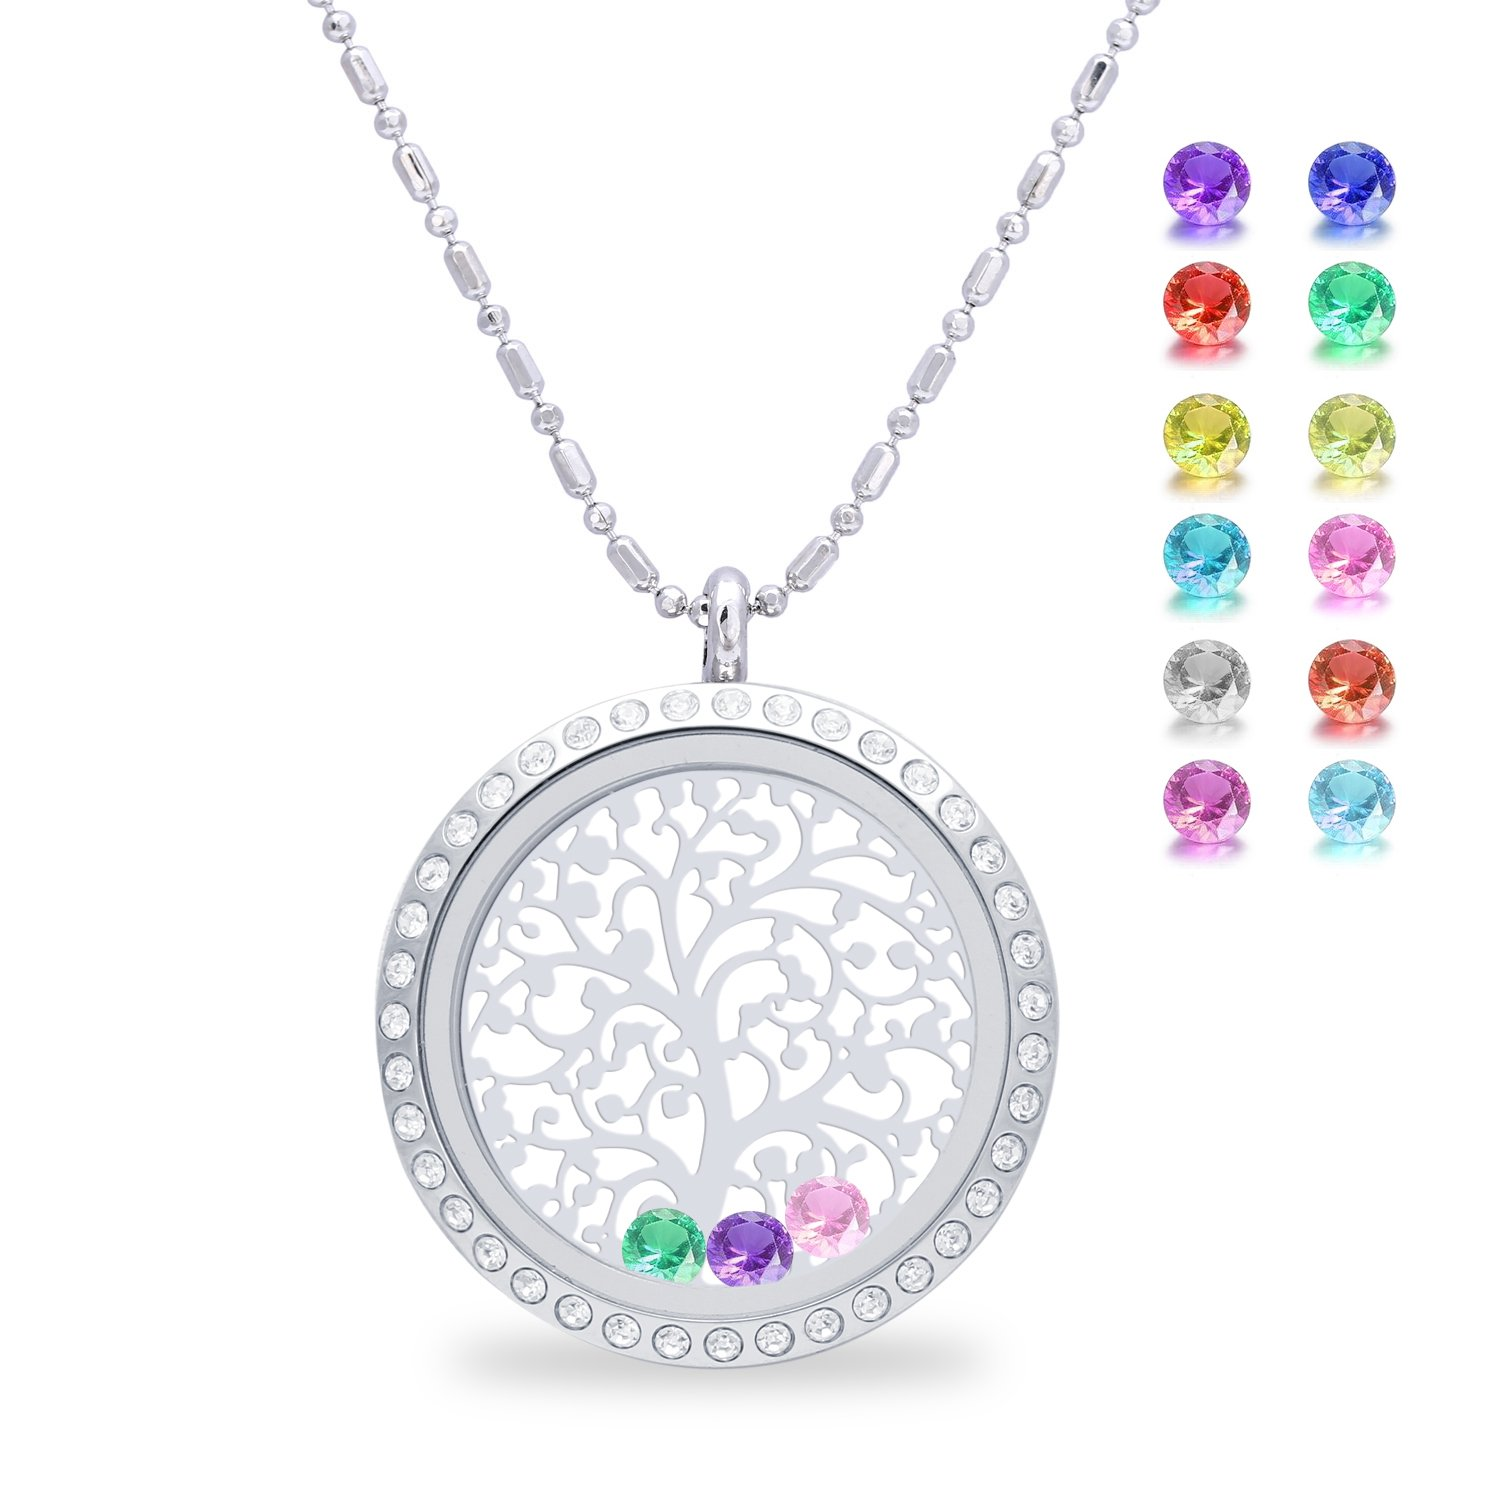 Family Tree of life Screw Floating Charm Living Memory Locket Pendant Necklace, Mothers day gifts from daughter and son, Gifts for wife, lover, birthday, mom, grandma, christmas gifts (Diamond)